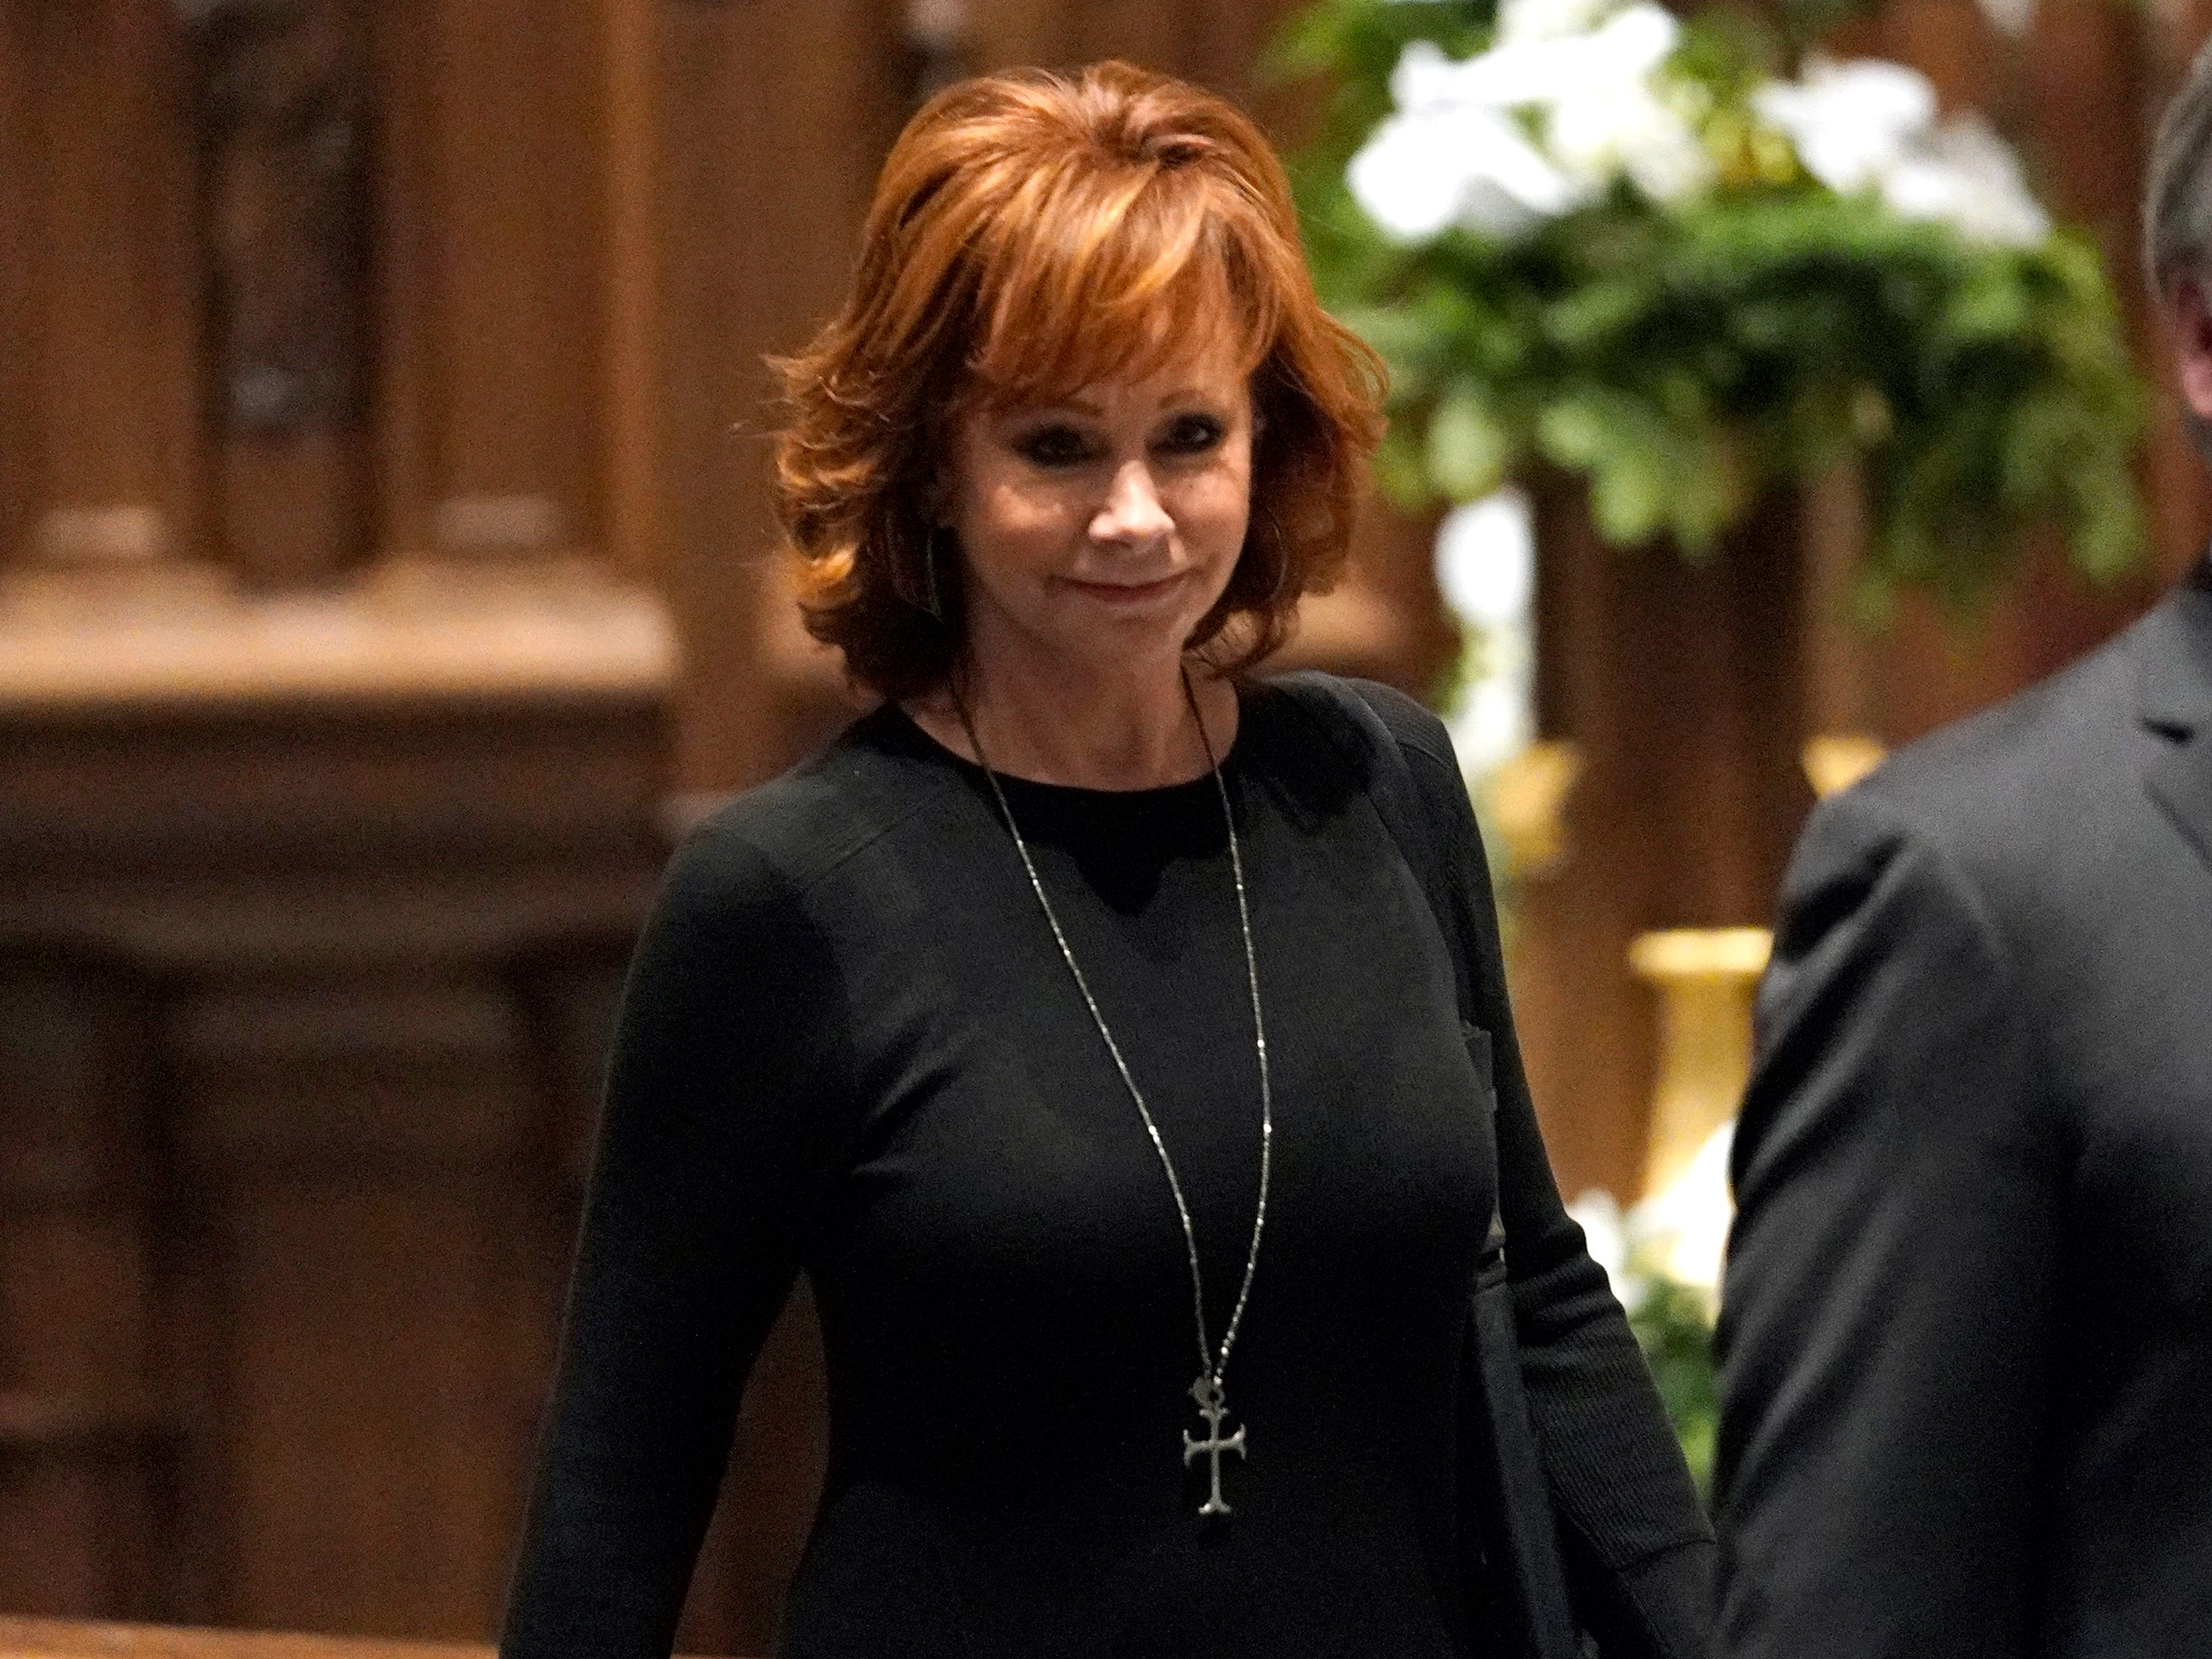 Reba McEntire arrives for a funeral service for former President George H.W. Bush at St. Martins Episcopal Church on Dec. 6, 2018 in Houston.